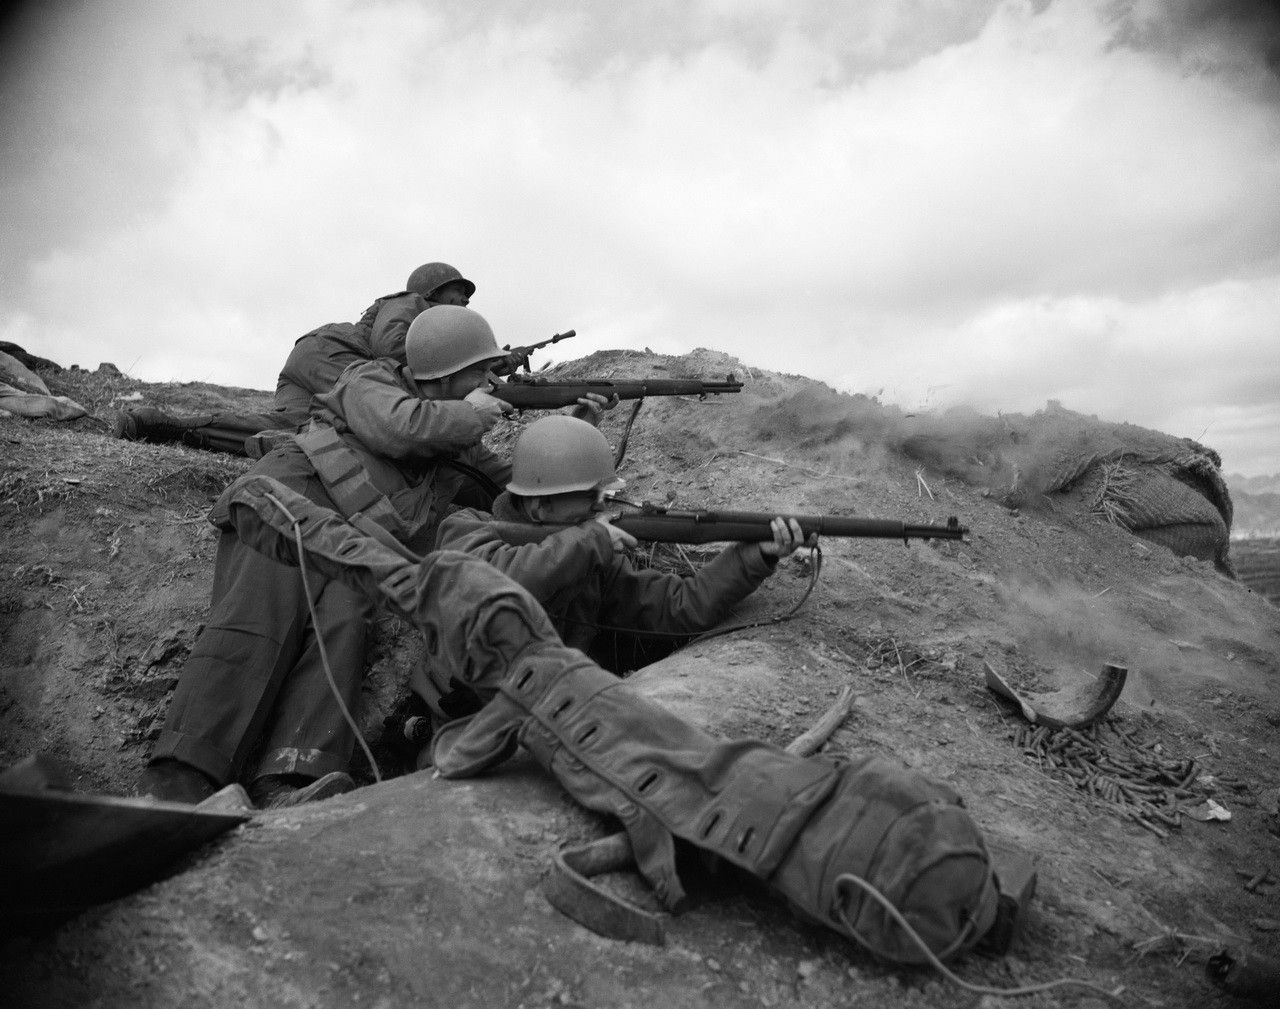 Soldiers from the USS Eldorado shoot at enemy targets from an infantry outpost, Korea, 1951